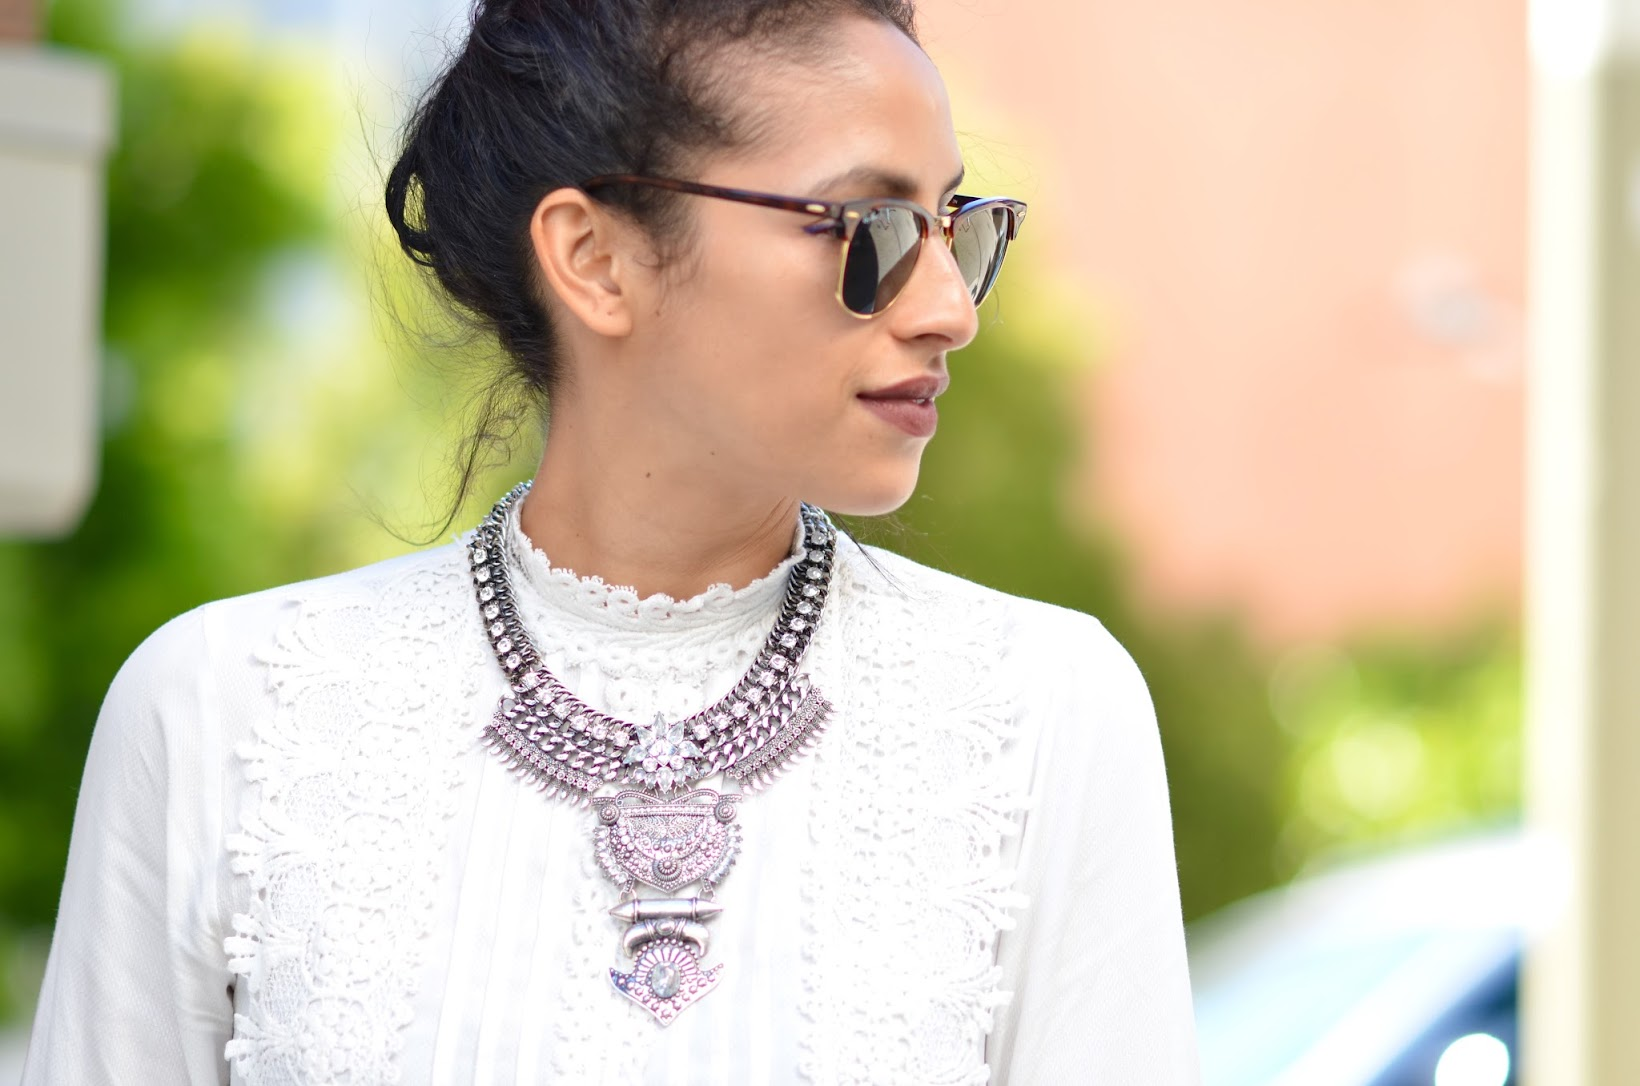 Bauble Bar Amazon necklace, Bare Minerals matte lipstick, Kylie lip kit, ray ban clubmasters, Zara victorian lace blouse, Fall style, summer style, SF style blogger